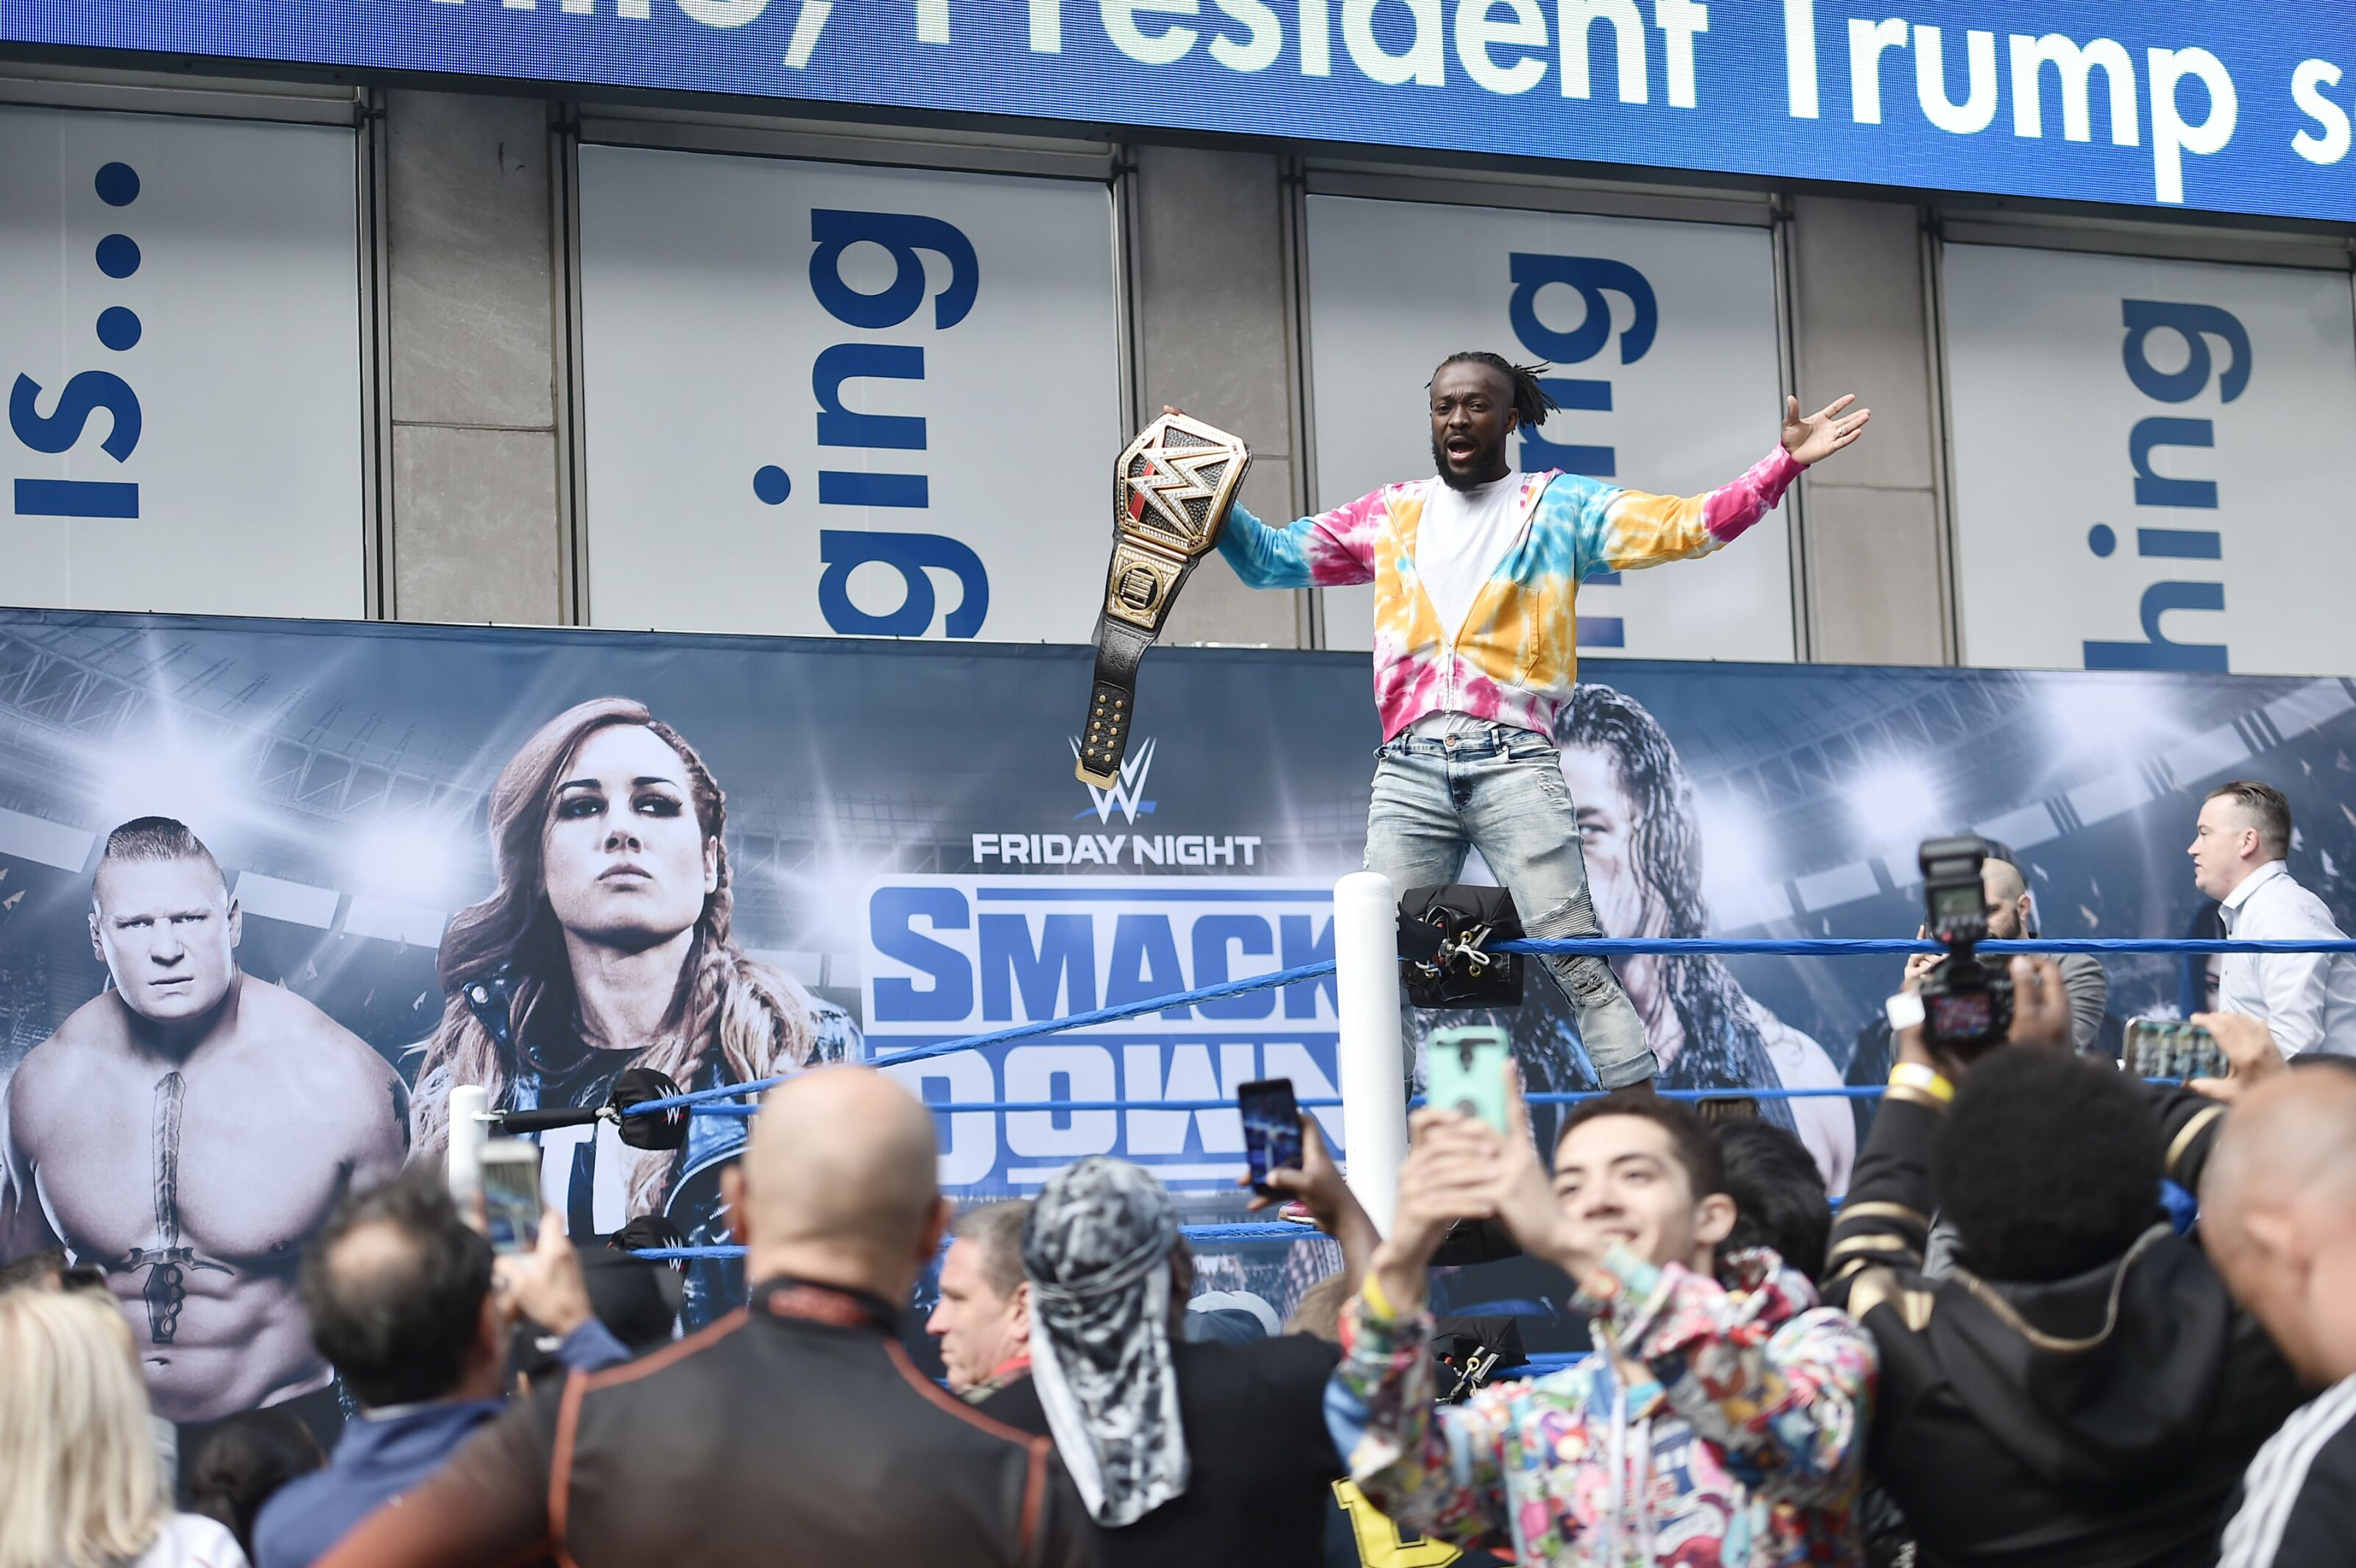 WWE SmackDown FOX Premiere: Results, Highlights, and Grades for Oct 4